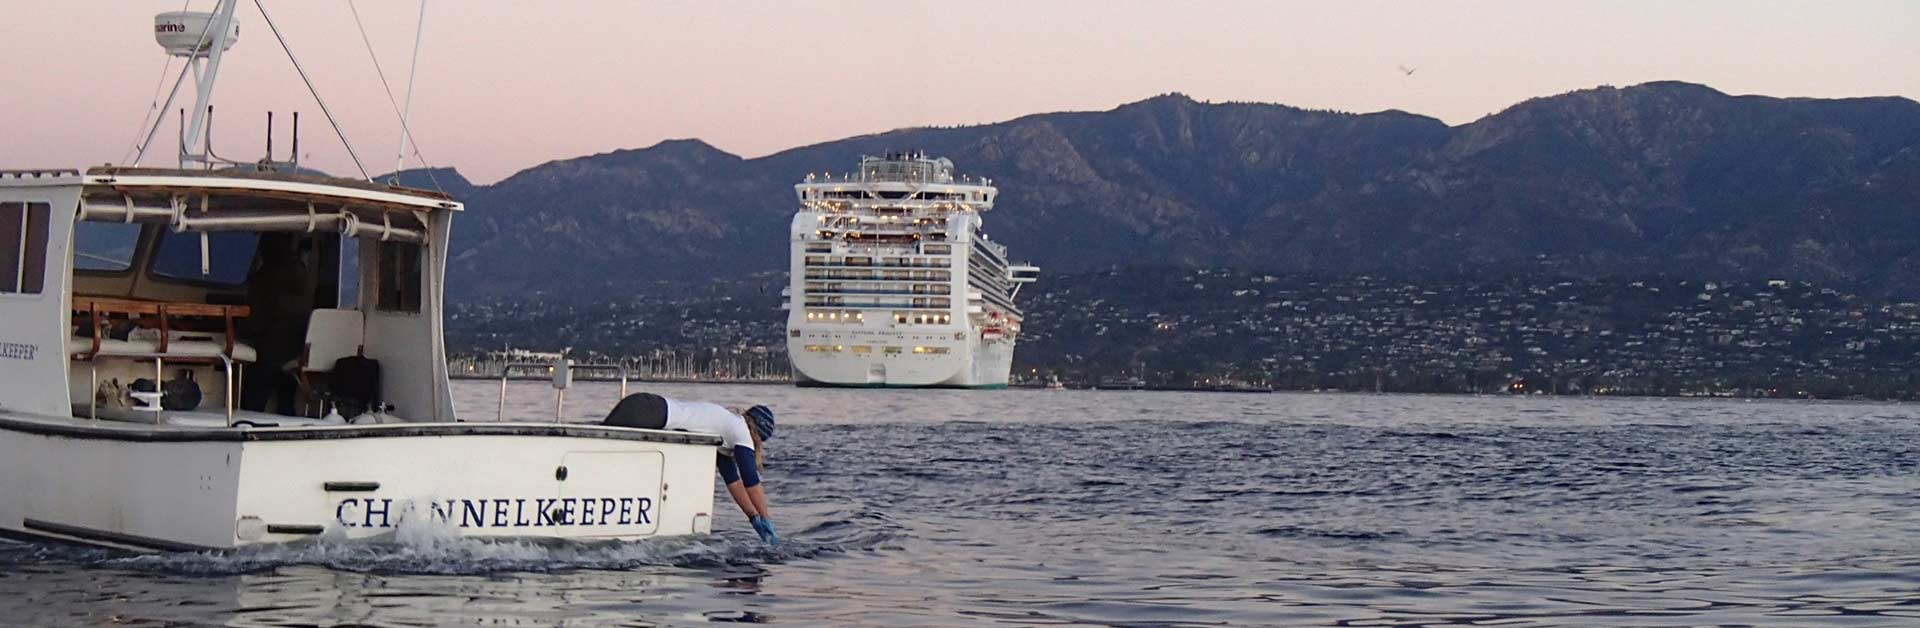 Santa Barbara Channelkeeper's team testing the water for pollution behind a huge cruise ship.